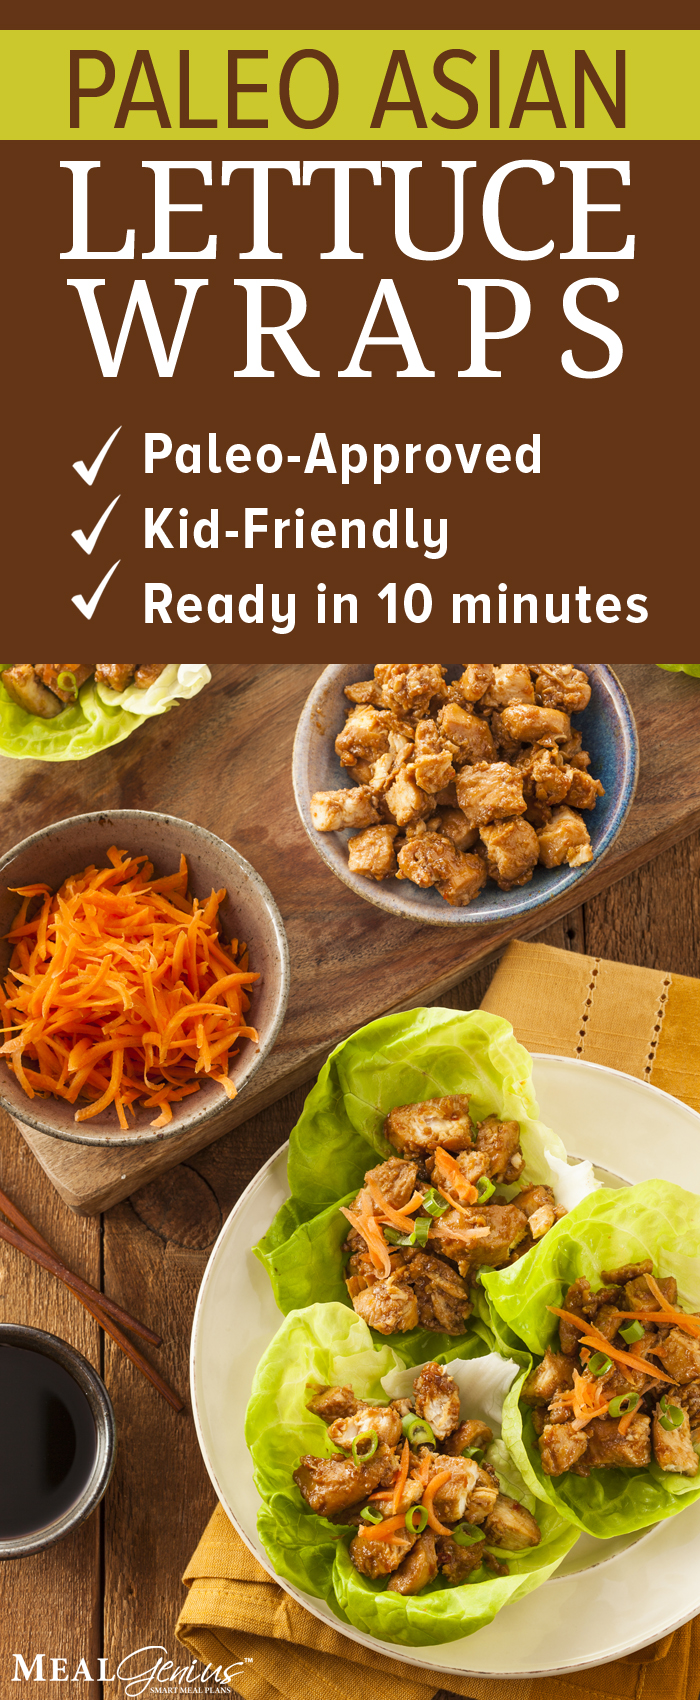 Paleo Asian Lettuce Wraps - Meal Genius Pinterest